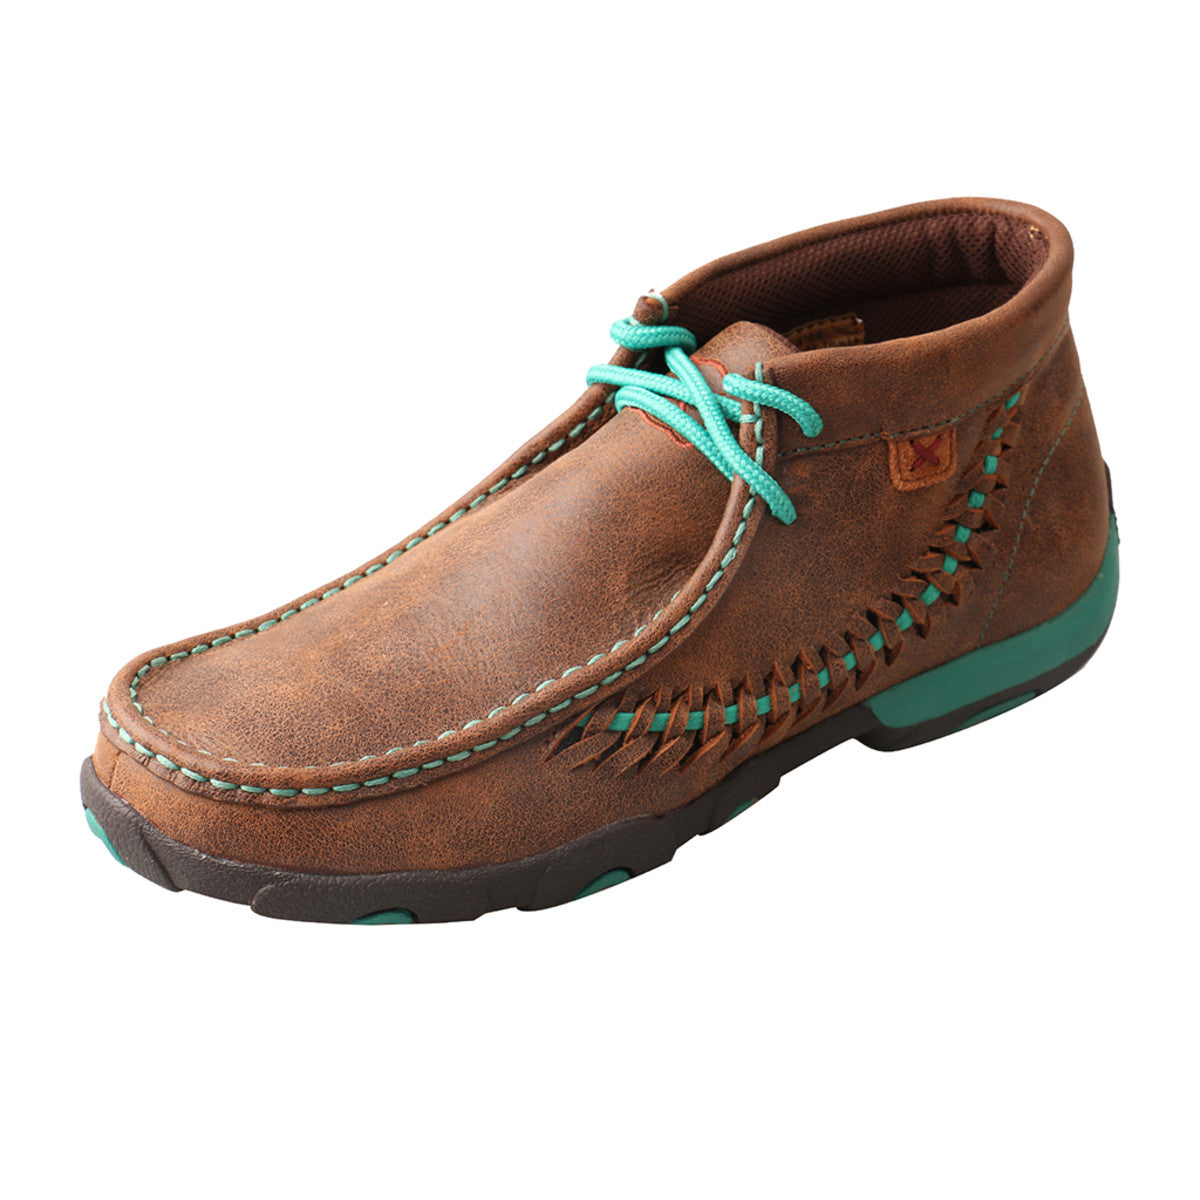 Women's Twisted X Original Chukka Driving Moccasins Shoe in Brown & Turquoise from the side view